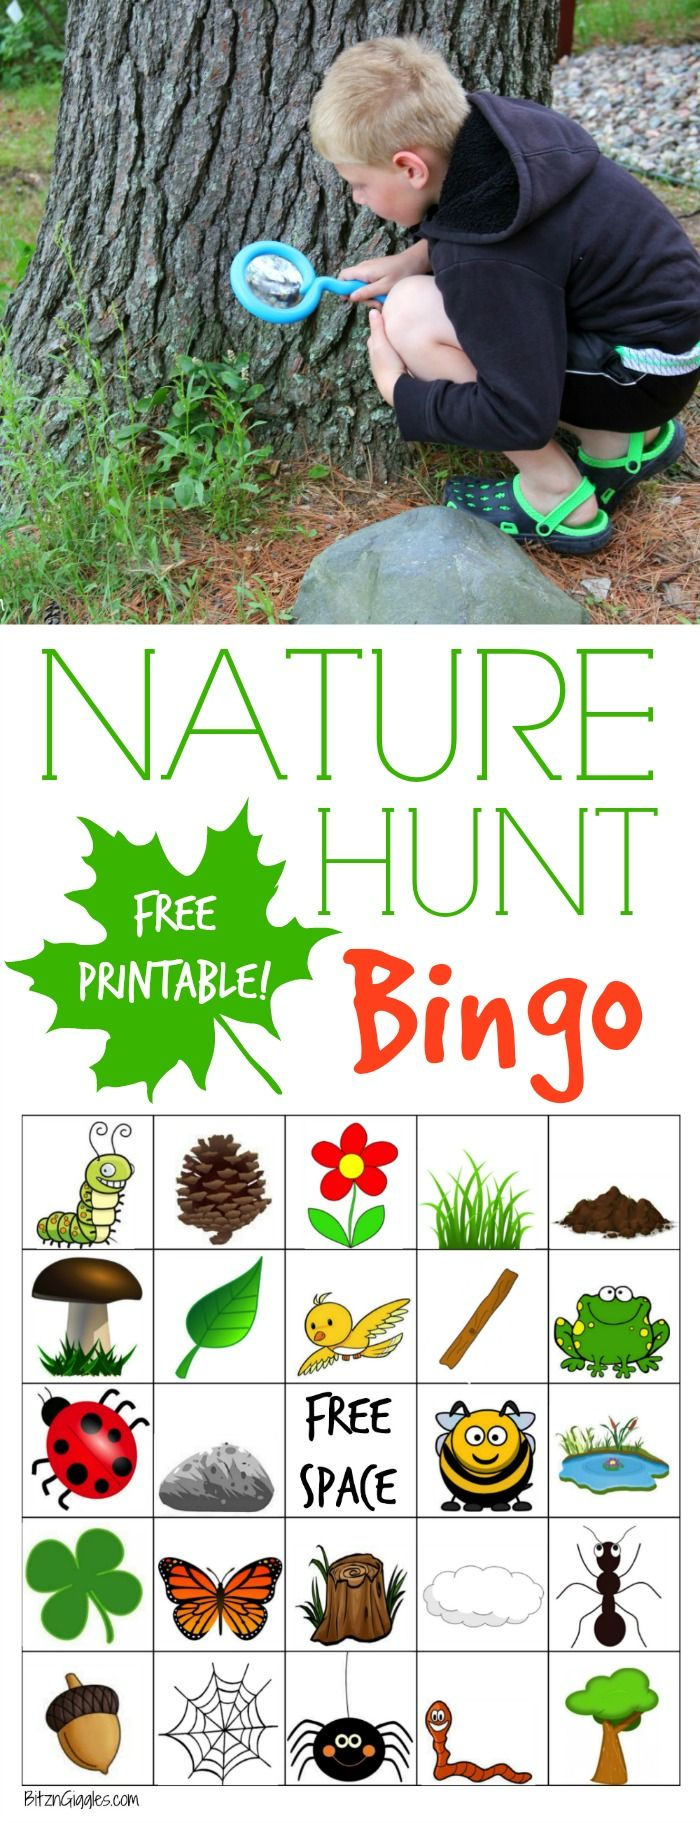 Nature Hunt Bingo - A super fun outdoor game for kids that encourages…